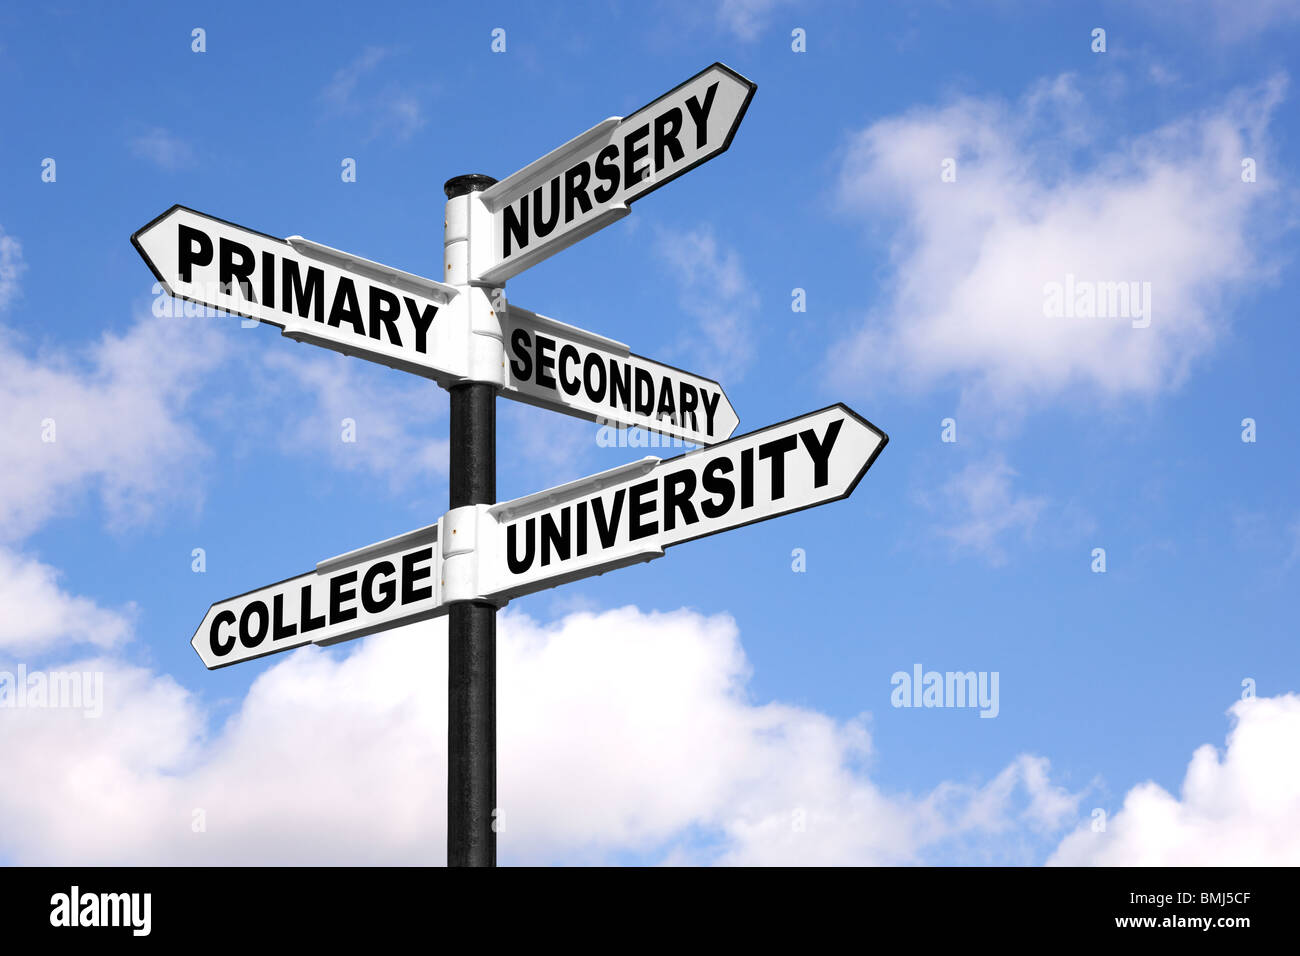 Signpost showing different levels of the school education system, against a blue cloudy sky background. - Stock Image